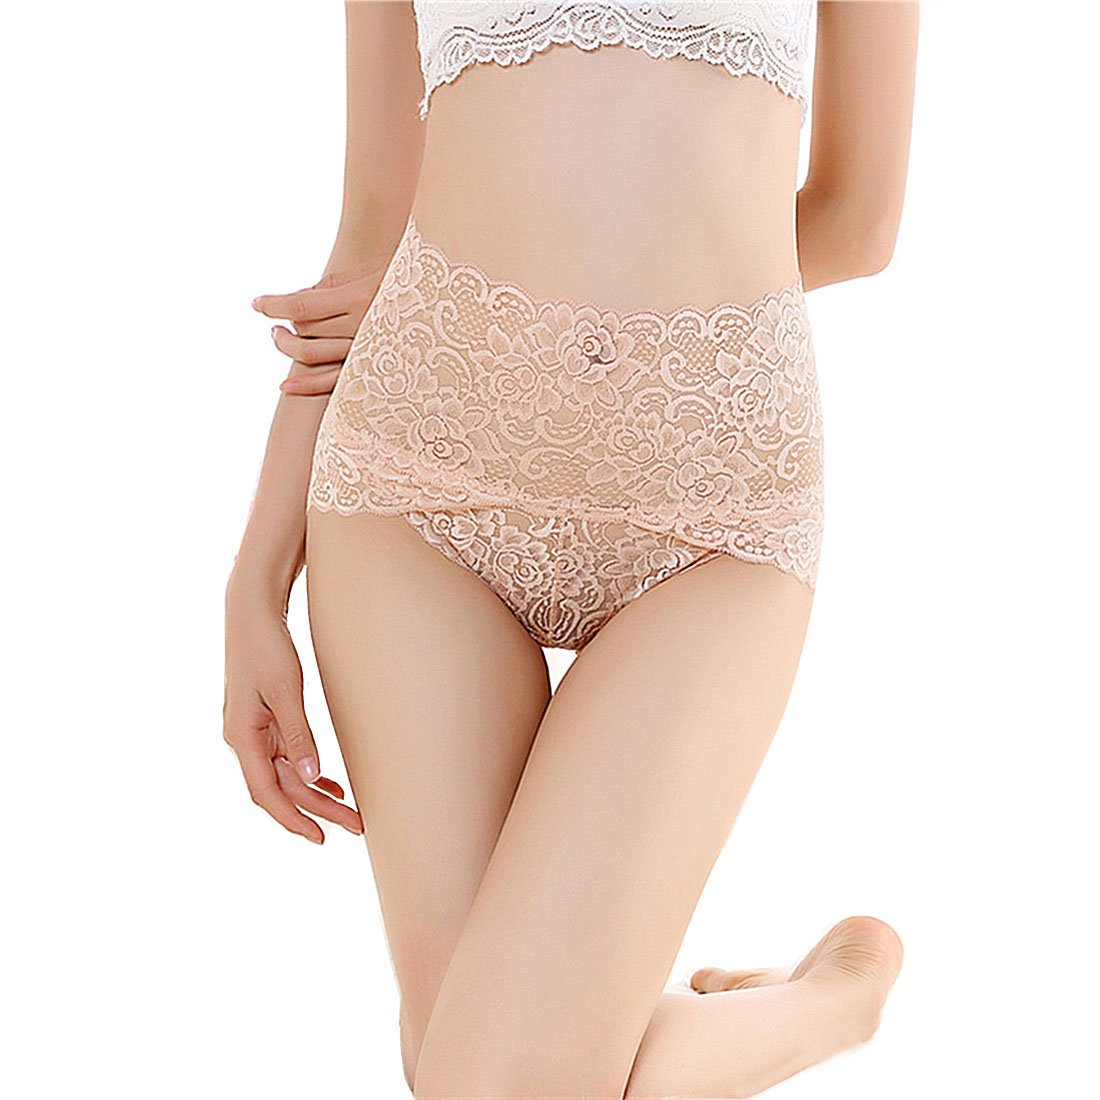 e33945e1a Amazon.com  cool nik Women s High Waist Lace Panties Comfortable Underwear  with High Elastic  Clothing